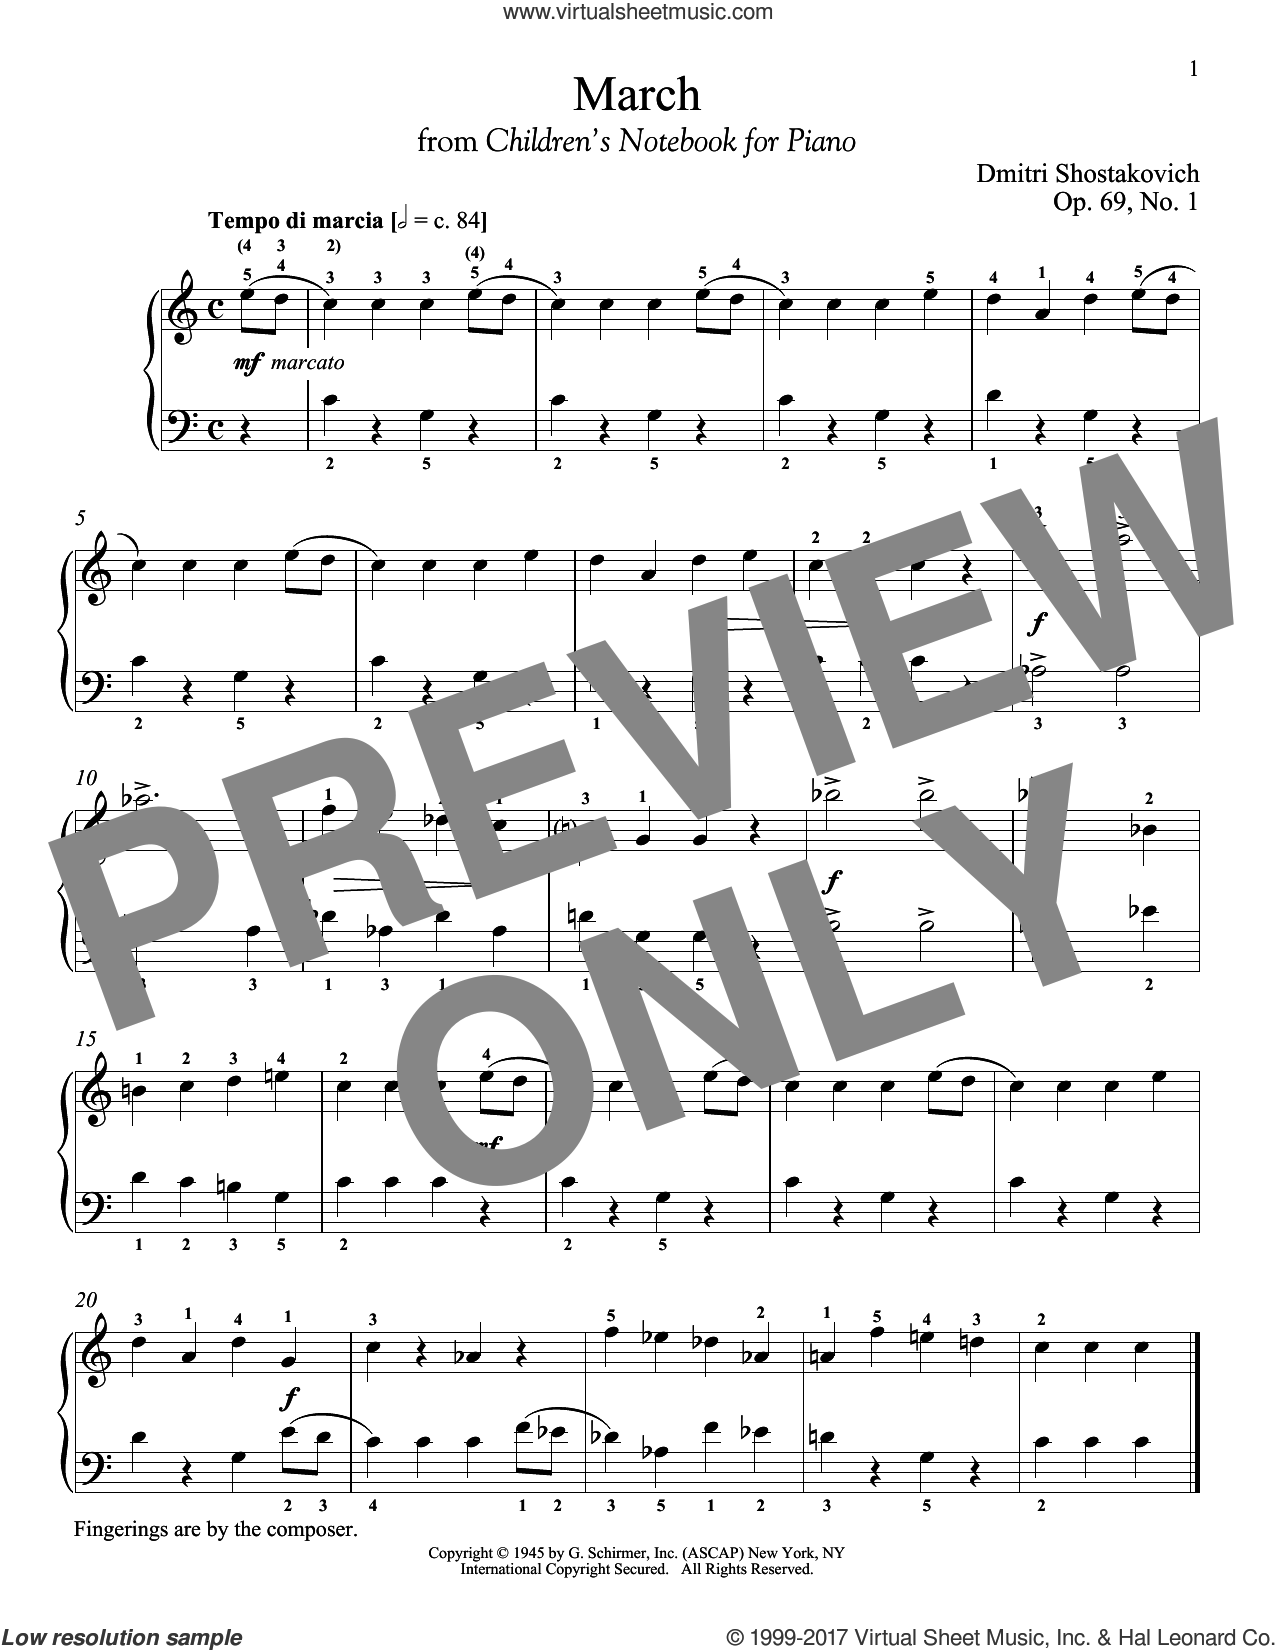 March, Op. 69, No. 1 sheet music for piano solo by Dmitri Shostakovich and Richard Walters, classical score, intermediate skill level